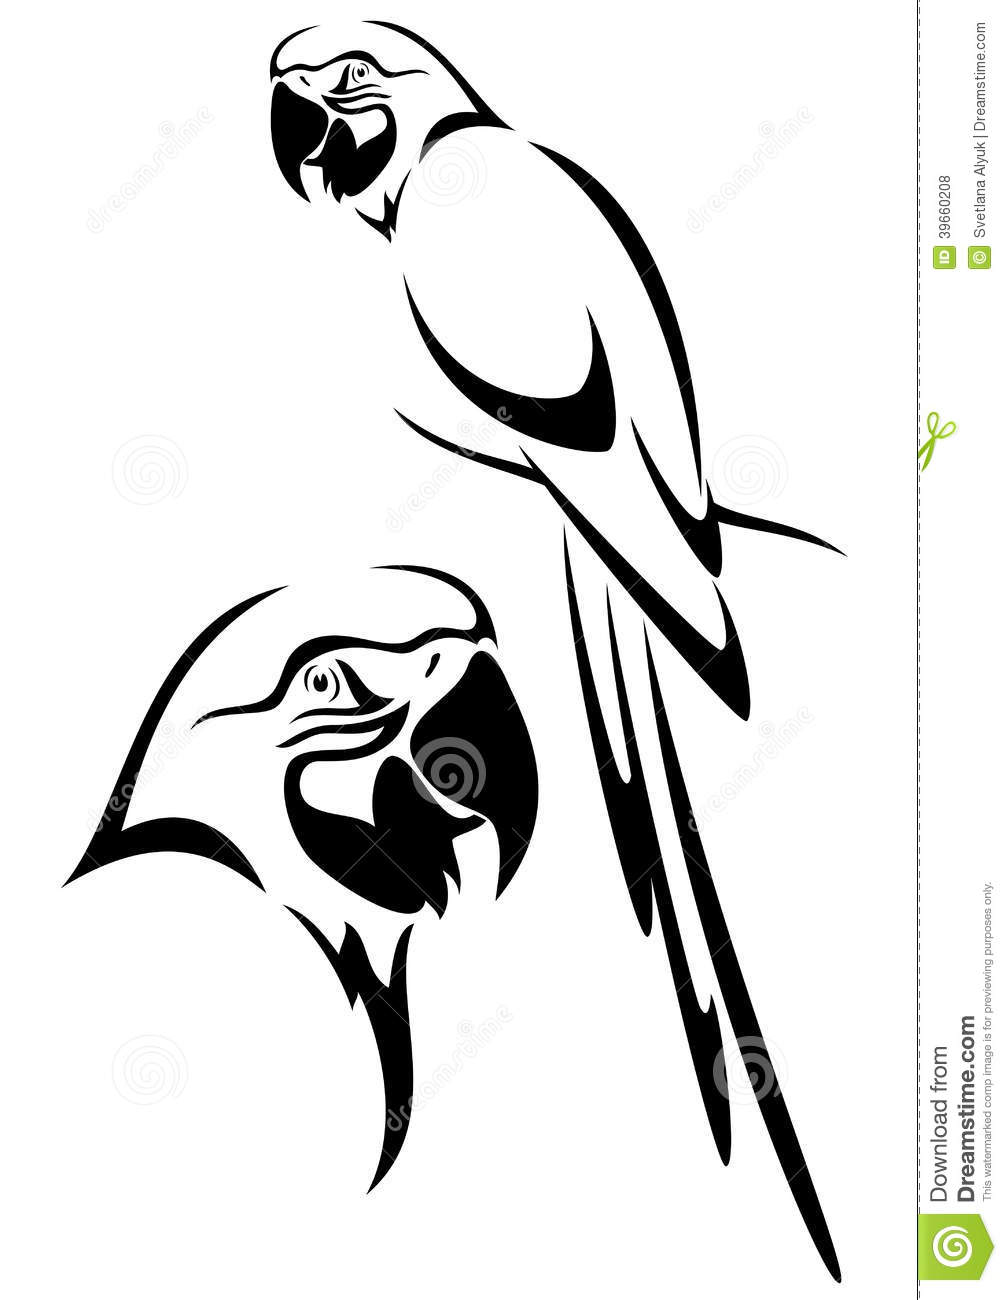 Tropical parrot and bird head black and white vector outline.